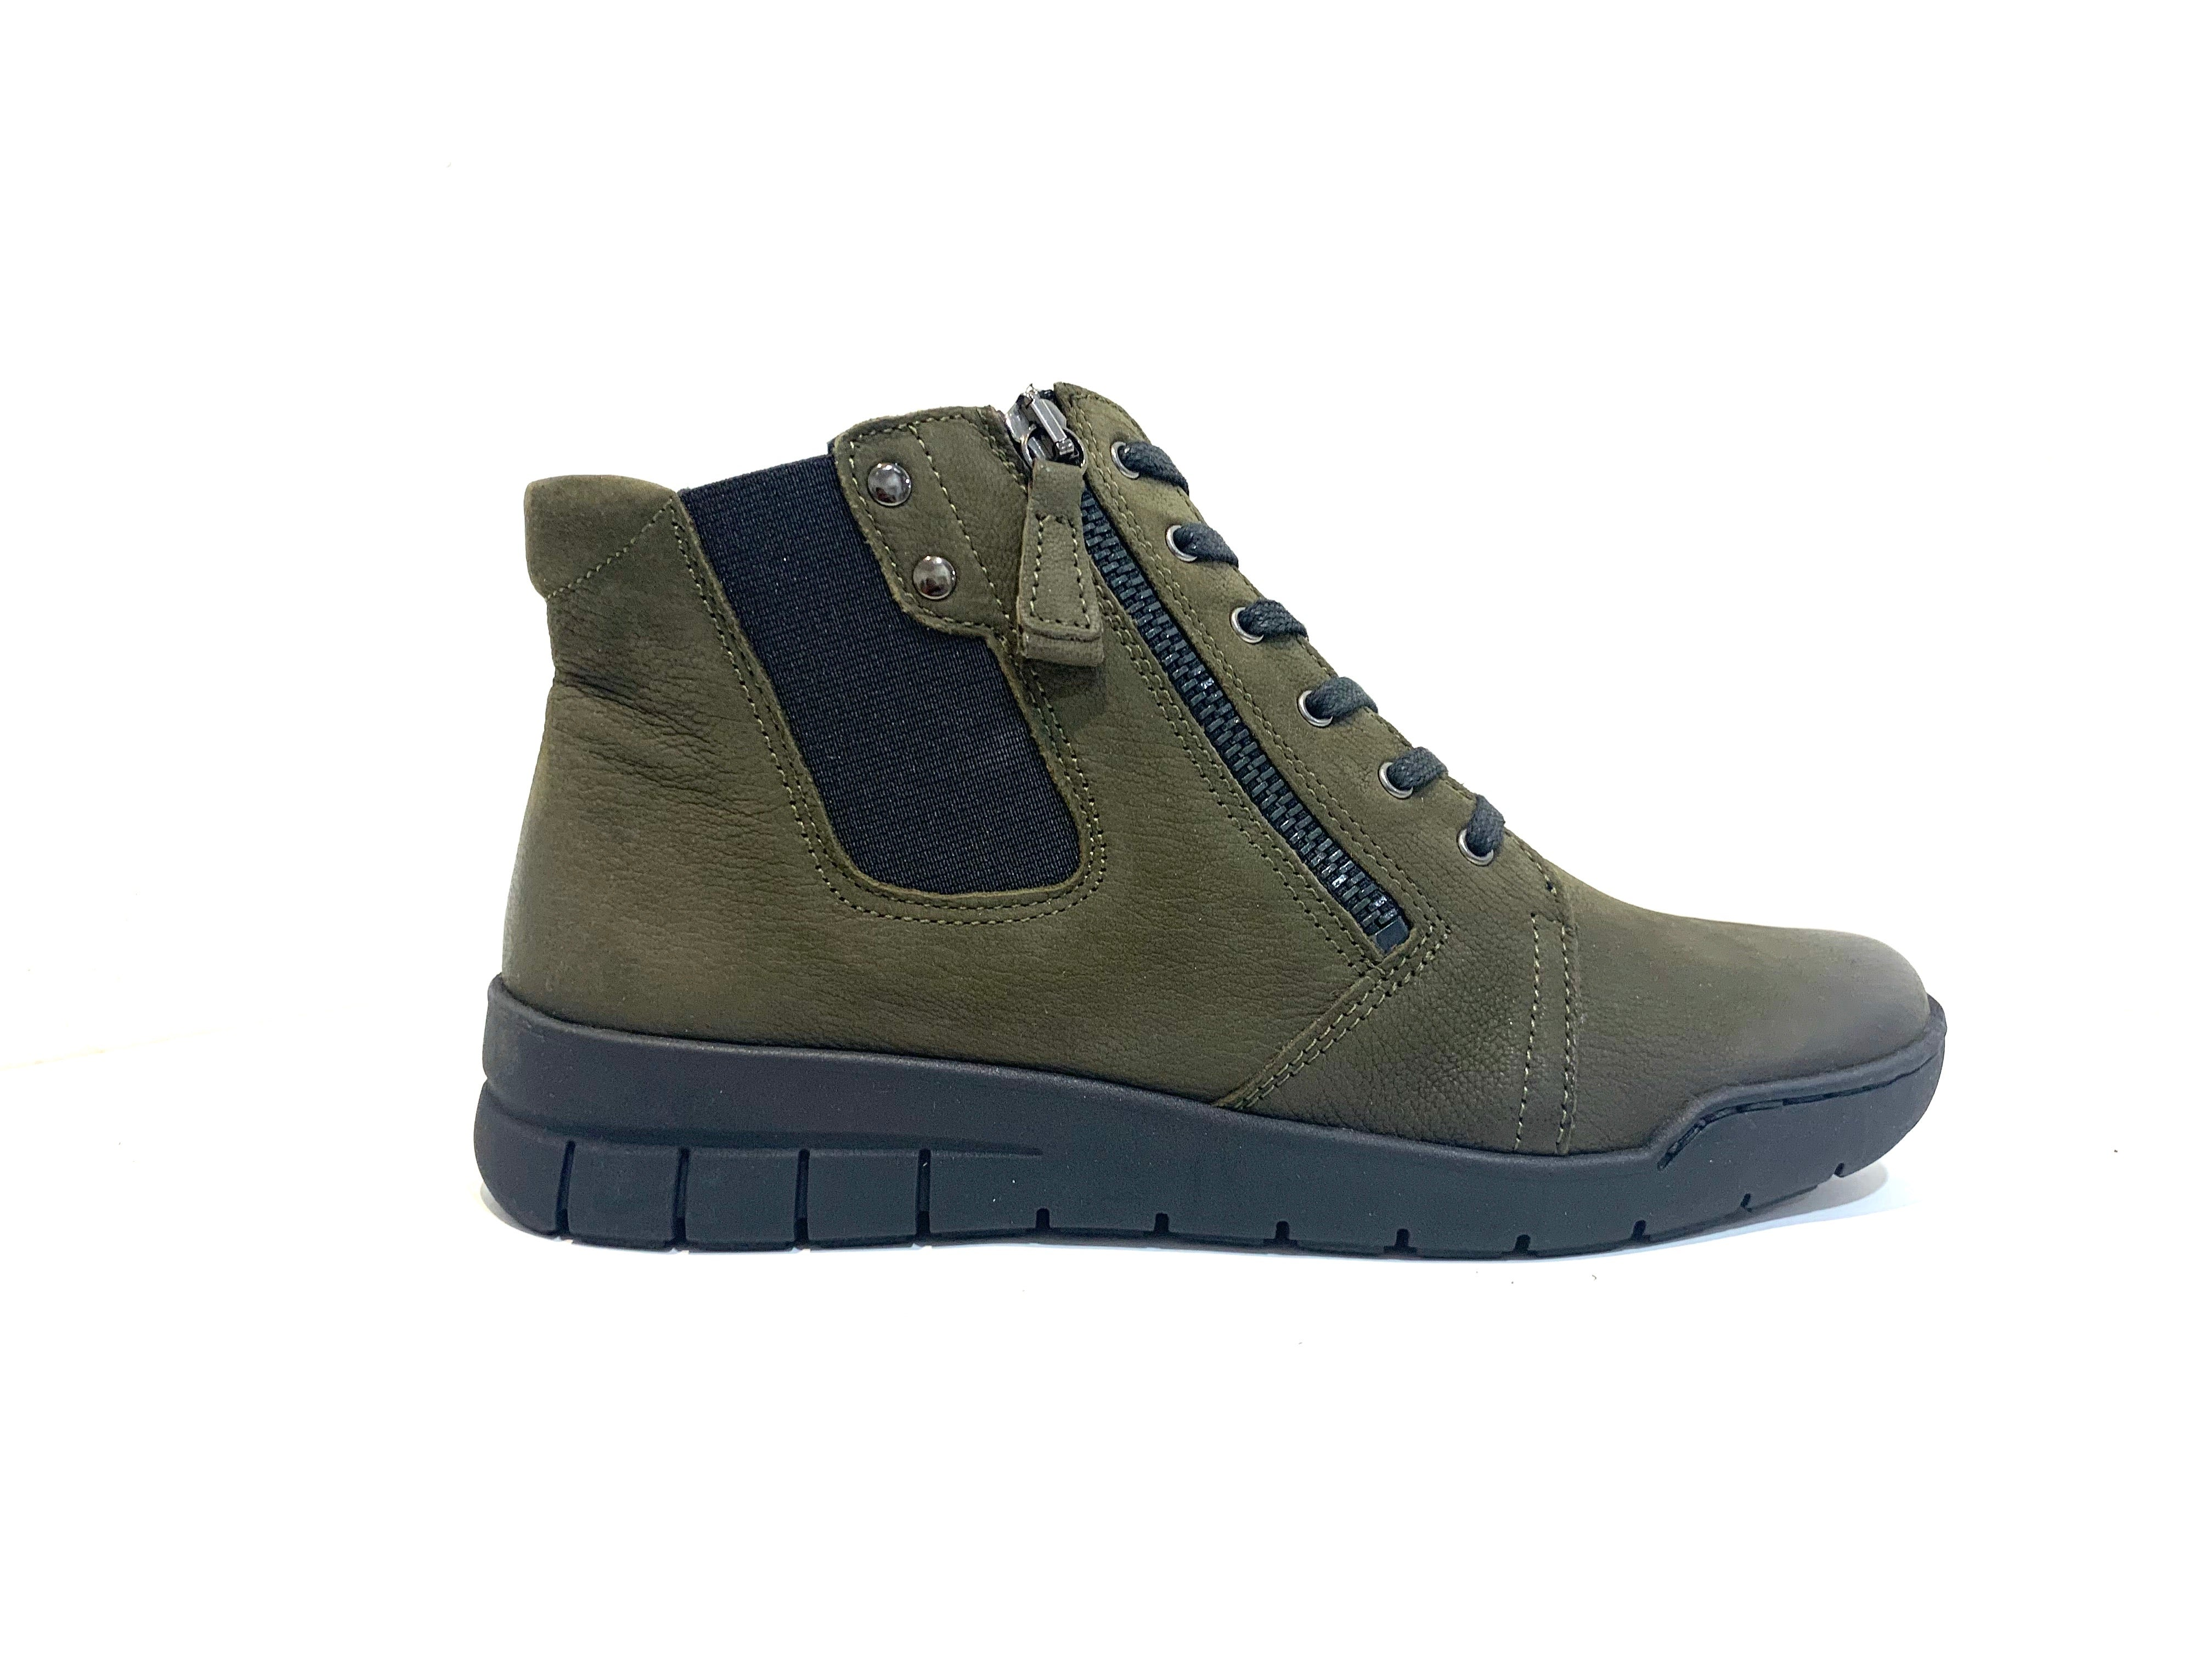 Relax Ladies Boots 290-104 Loden Olive Green Lace Up Zip Ankle Made In Bosnia